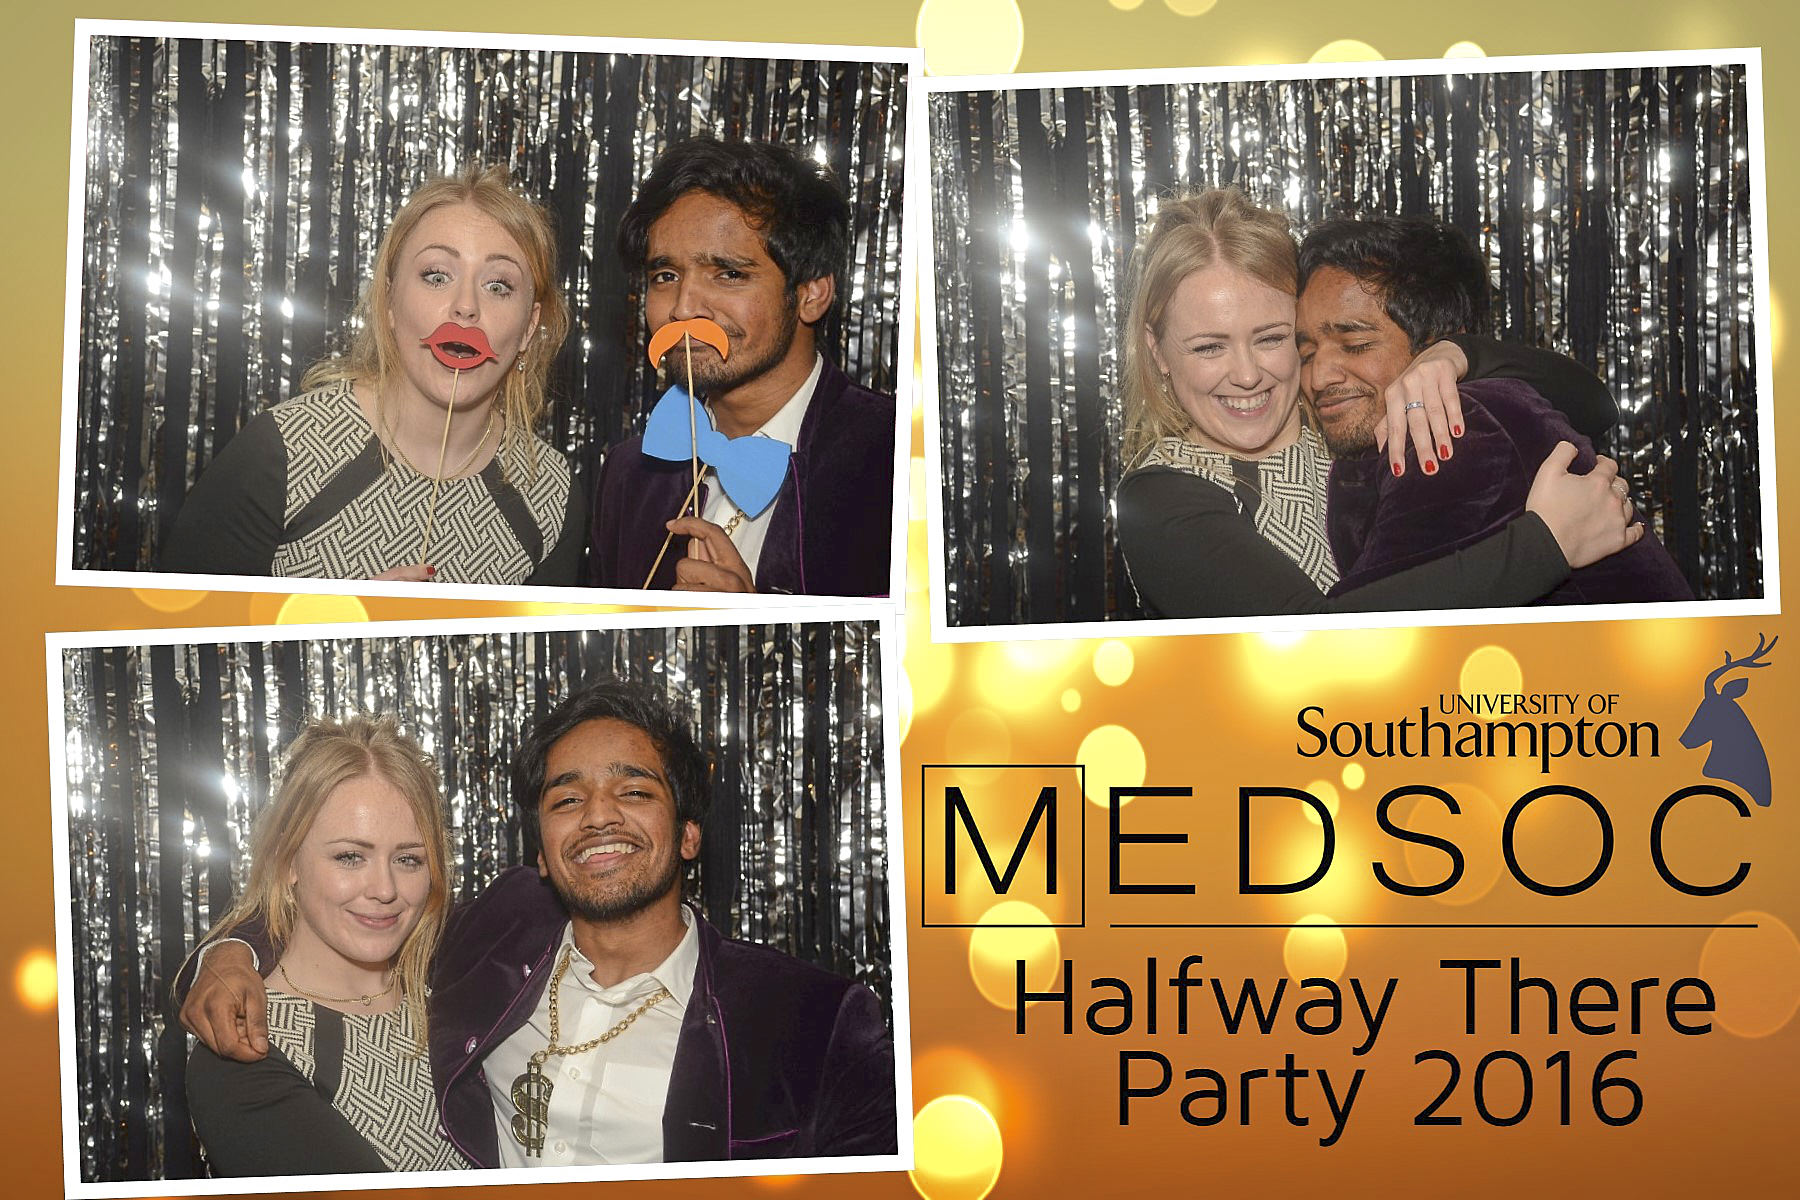 MedSoc Halfway There Party 2016 DS214116.jpg